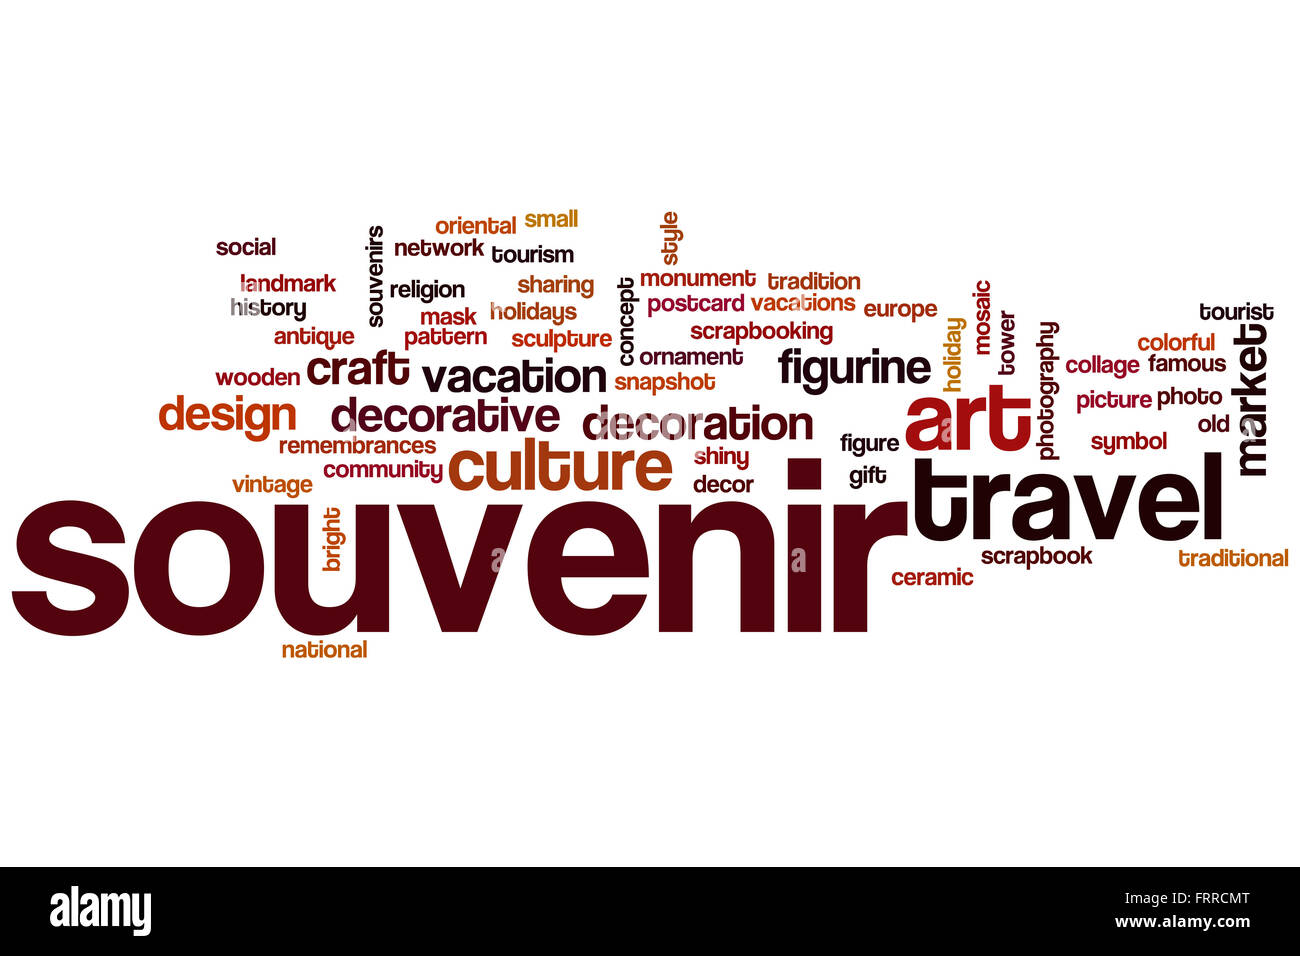 Souvenir Word Cloud Concept With Travel Art Related Tags